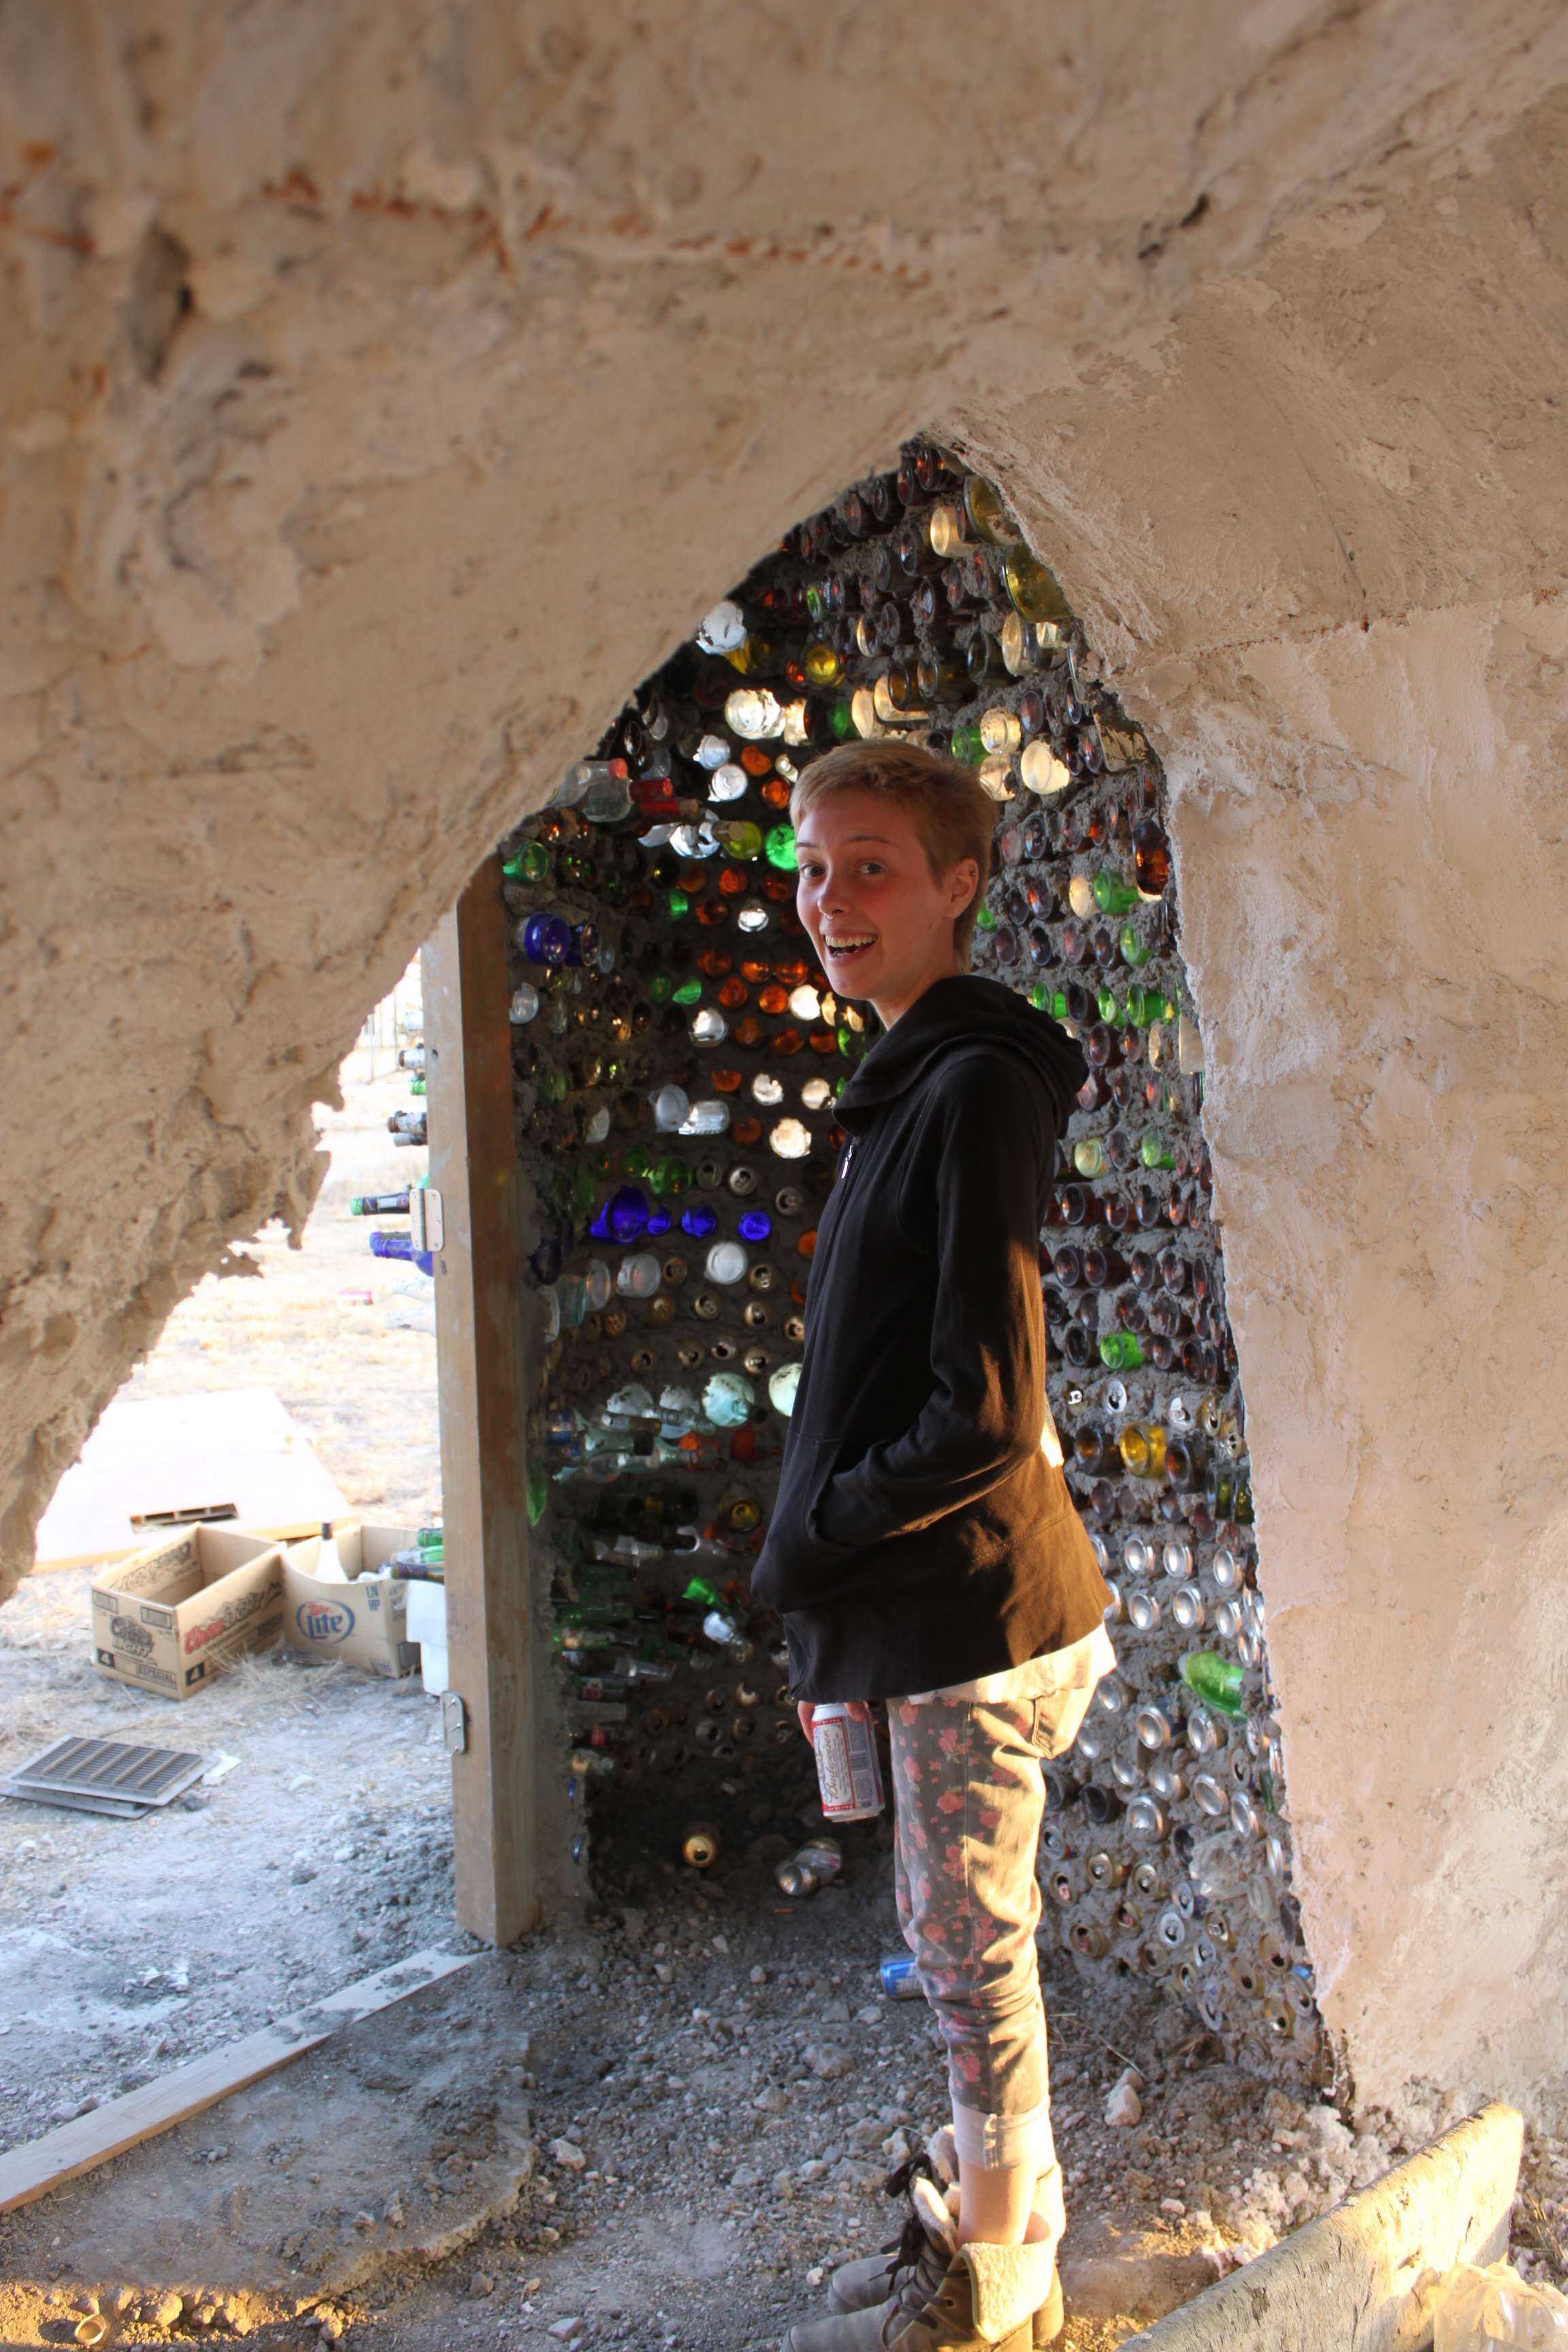 Angie in a castle of old beer cans and bottles.